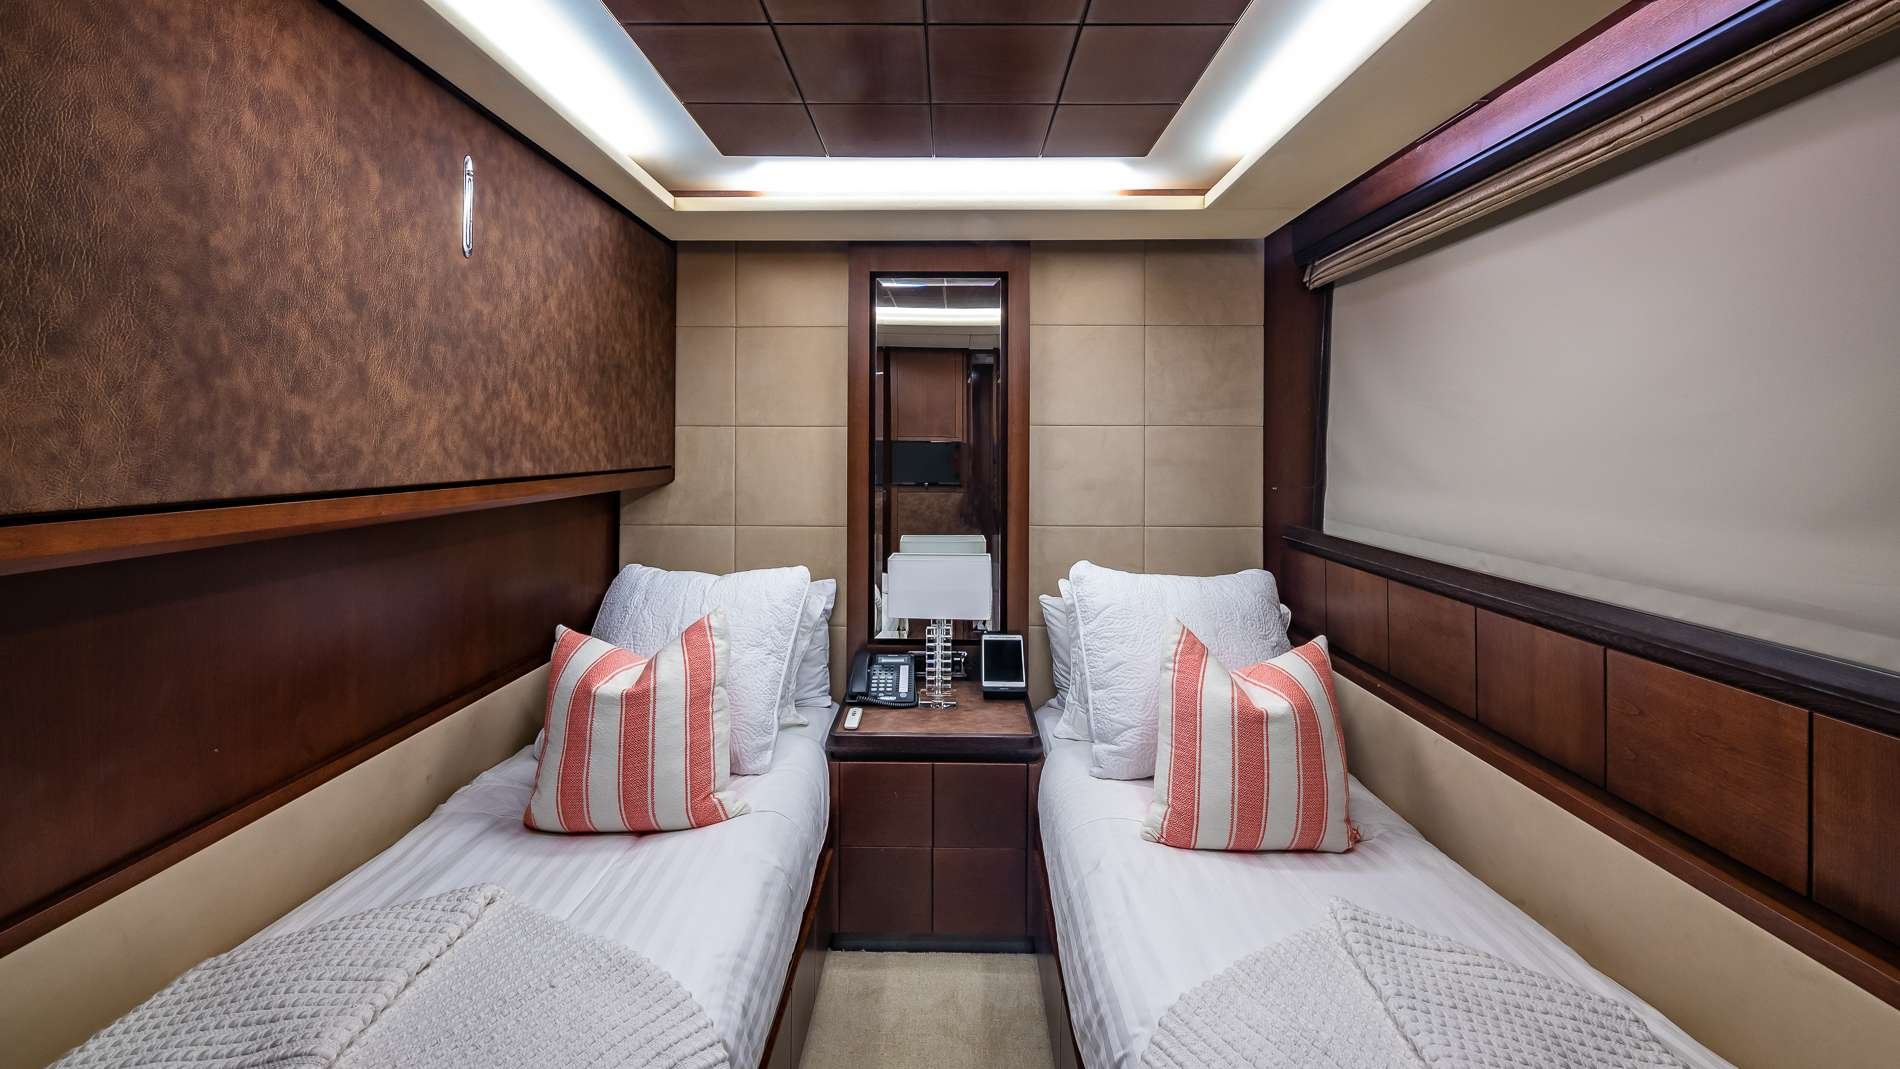 Motor Yacht 'TAIL LIGHTS' Twin Stateroom, 12 PAX, 6 Crew, 116.00 Ft, 35.00 Meters, Built 2011, Azimut, Refit Year 2016